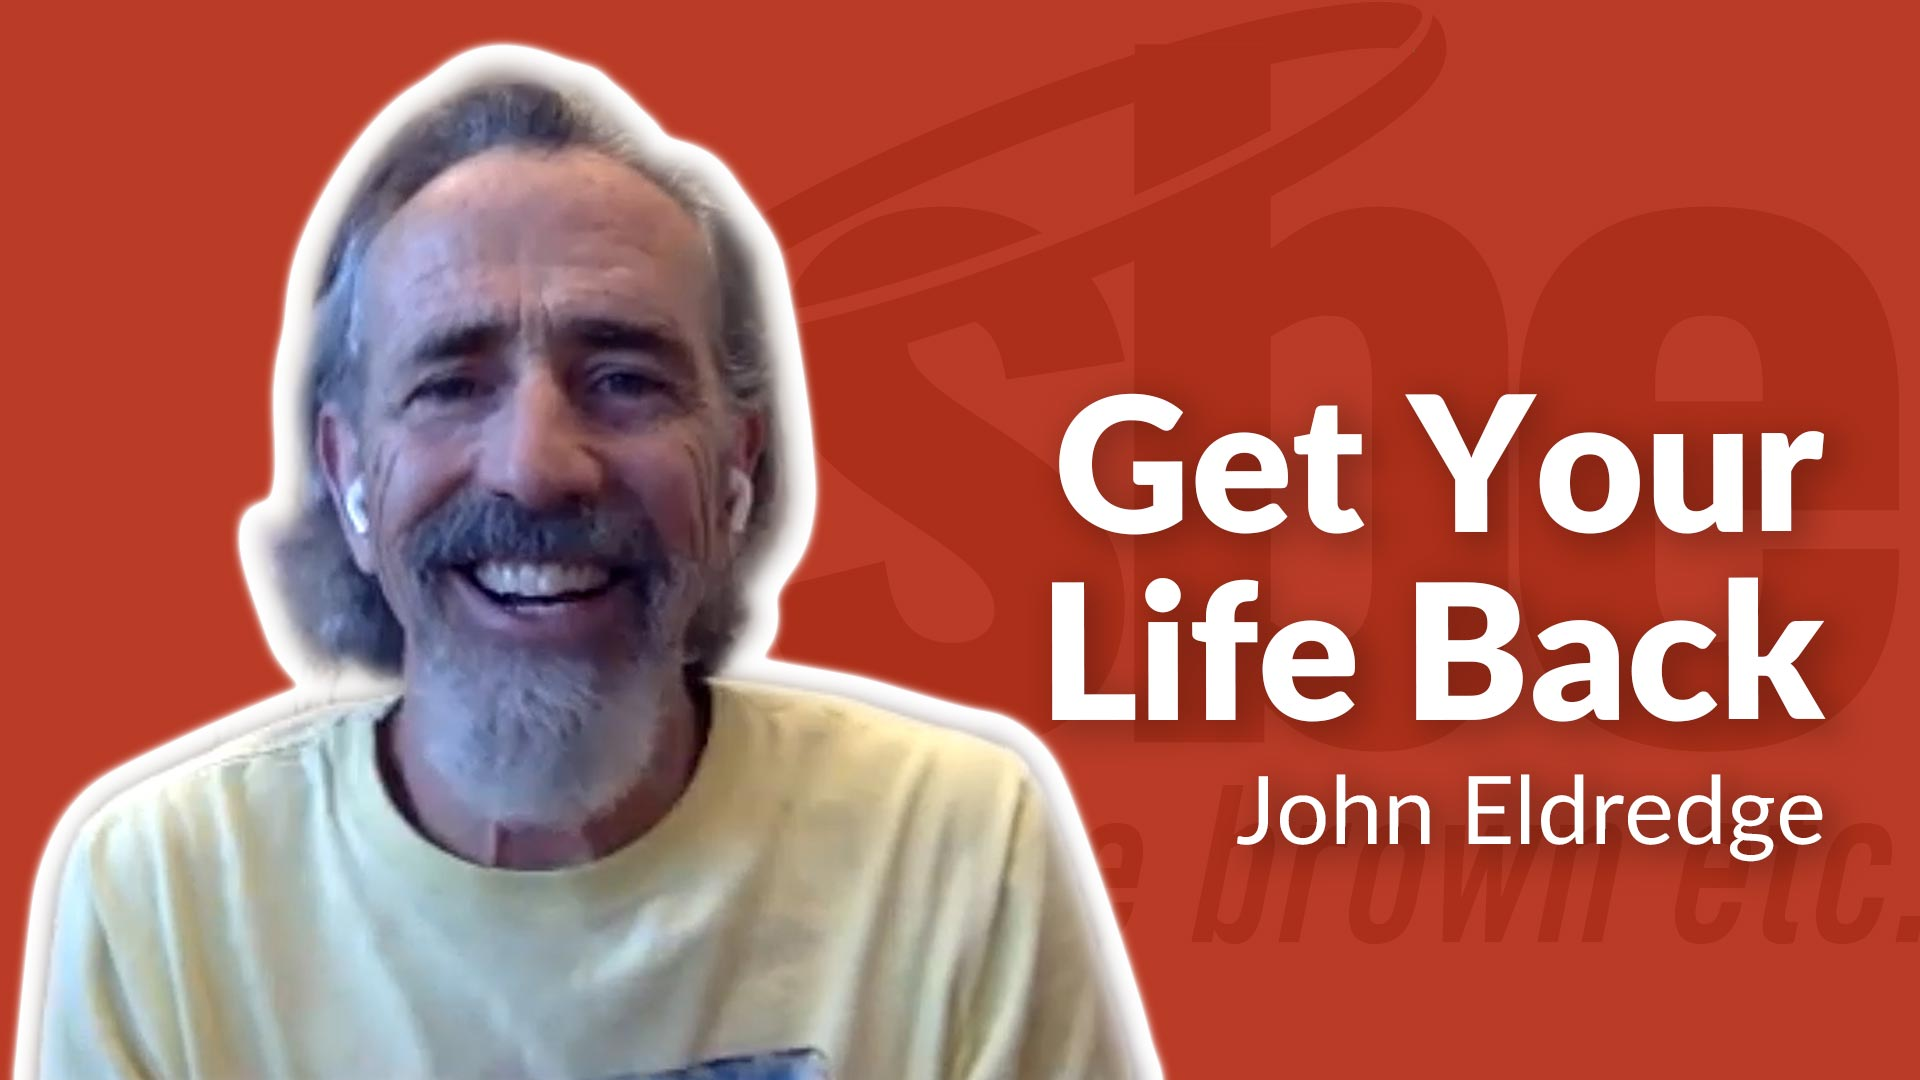 John Eldredge | Get Your Life Back